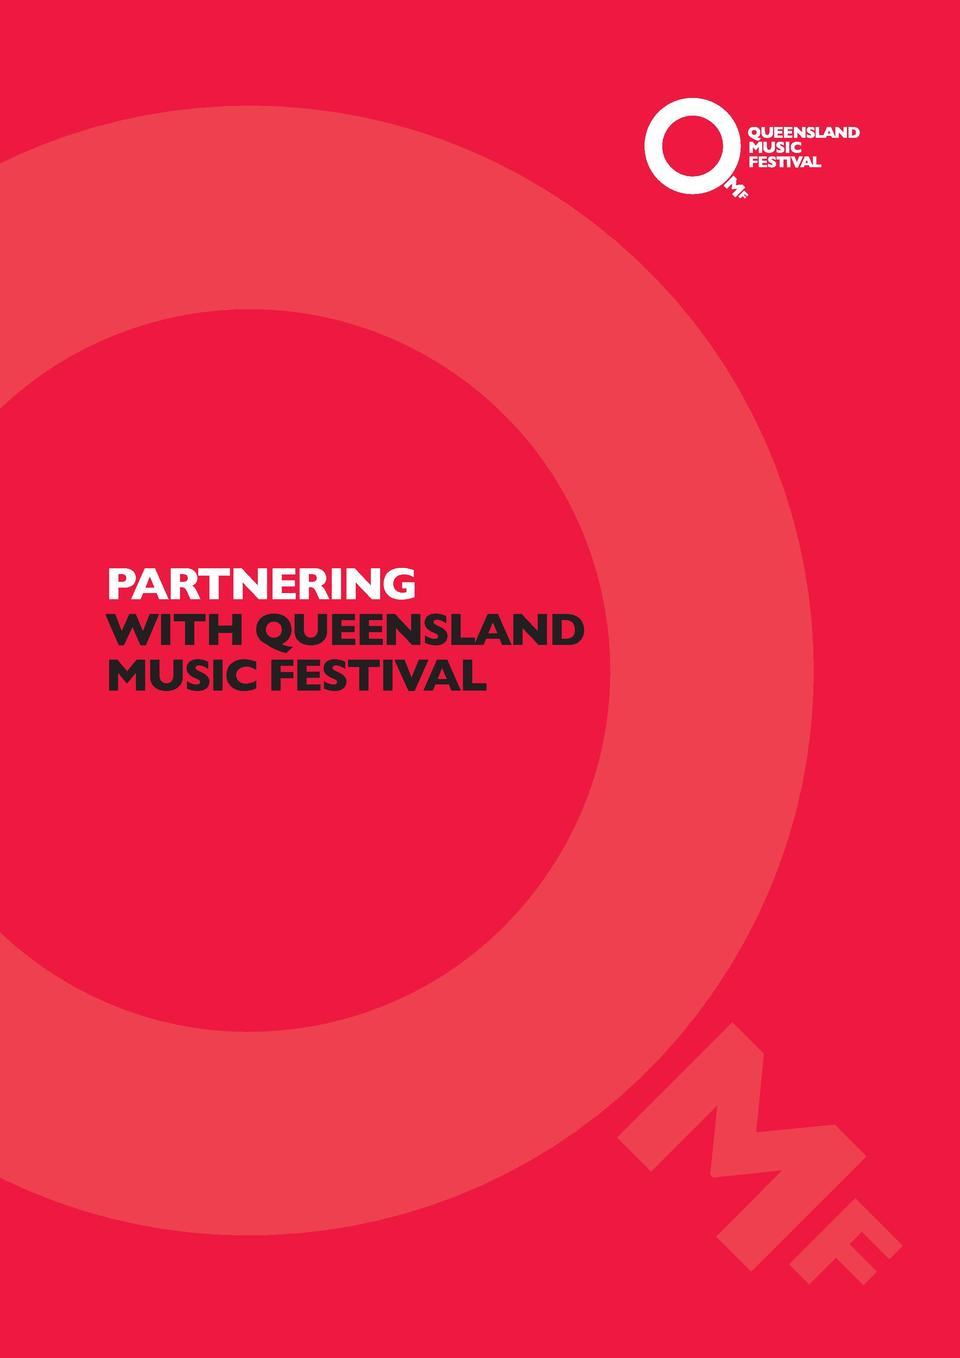 PARTNERING WITH QUEENSLAND MUSIC FESTIVAL